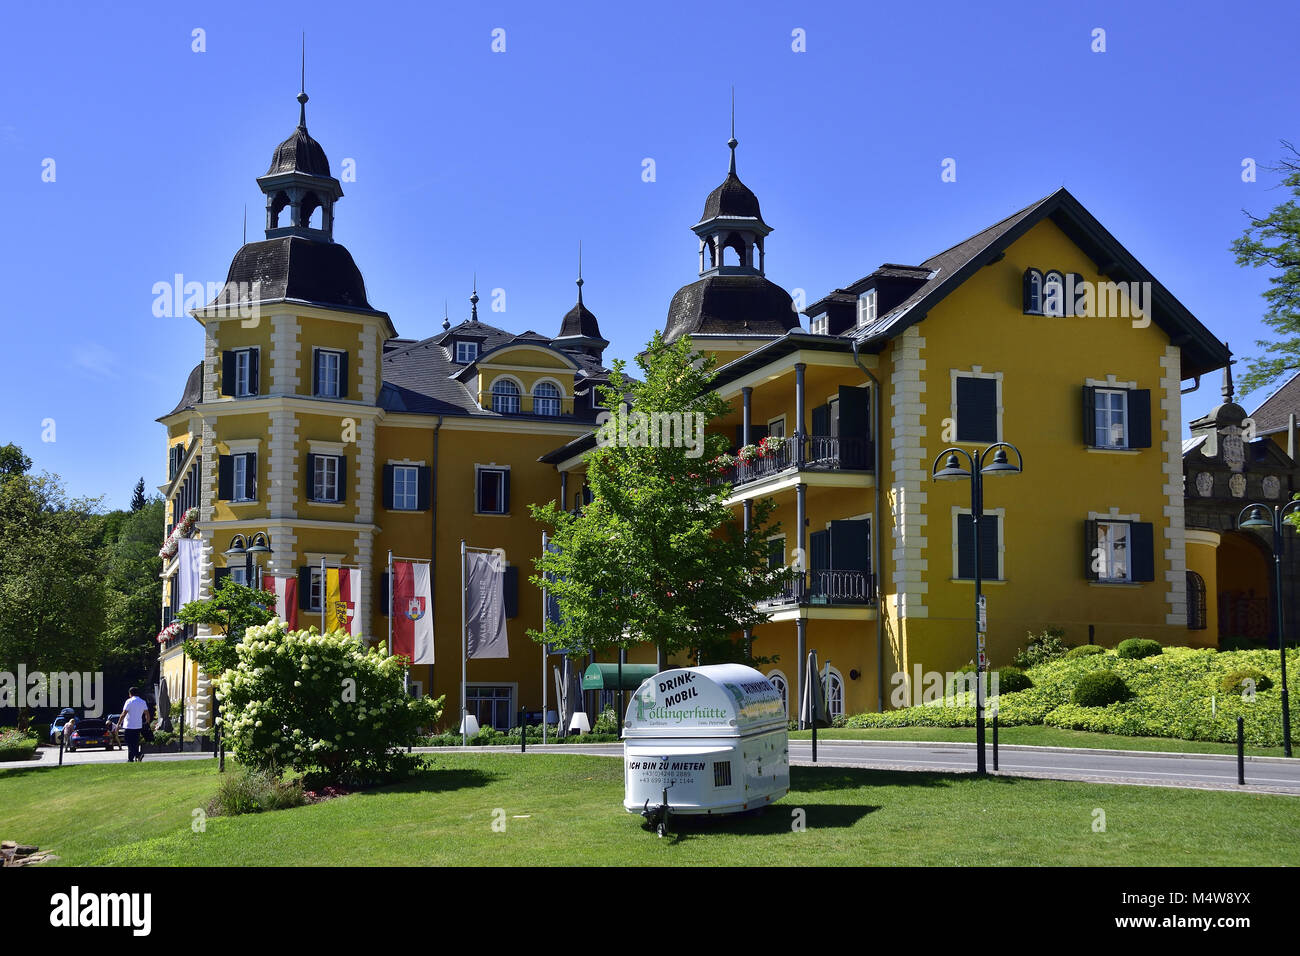 Hotel castle in Velden at Worthersee - Stock Image